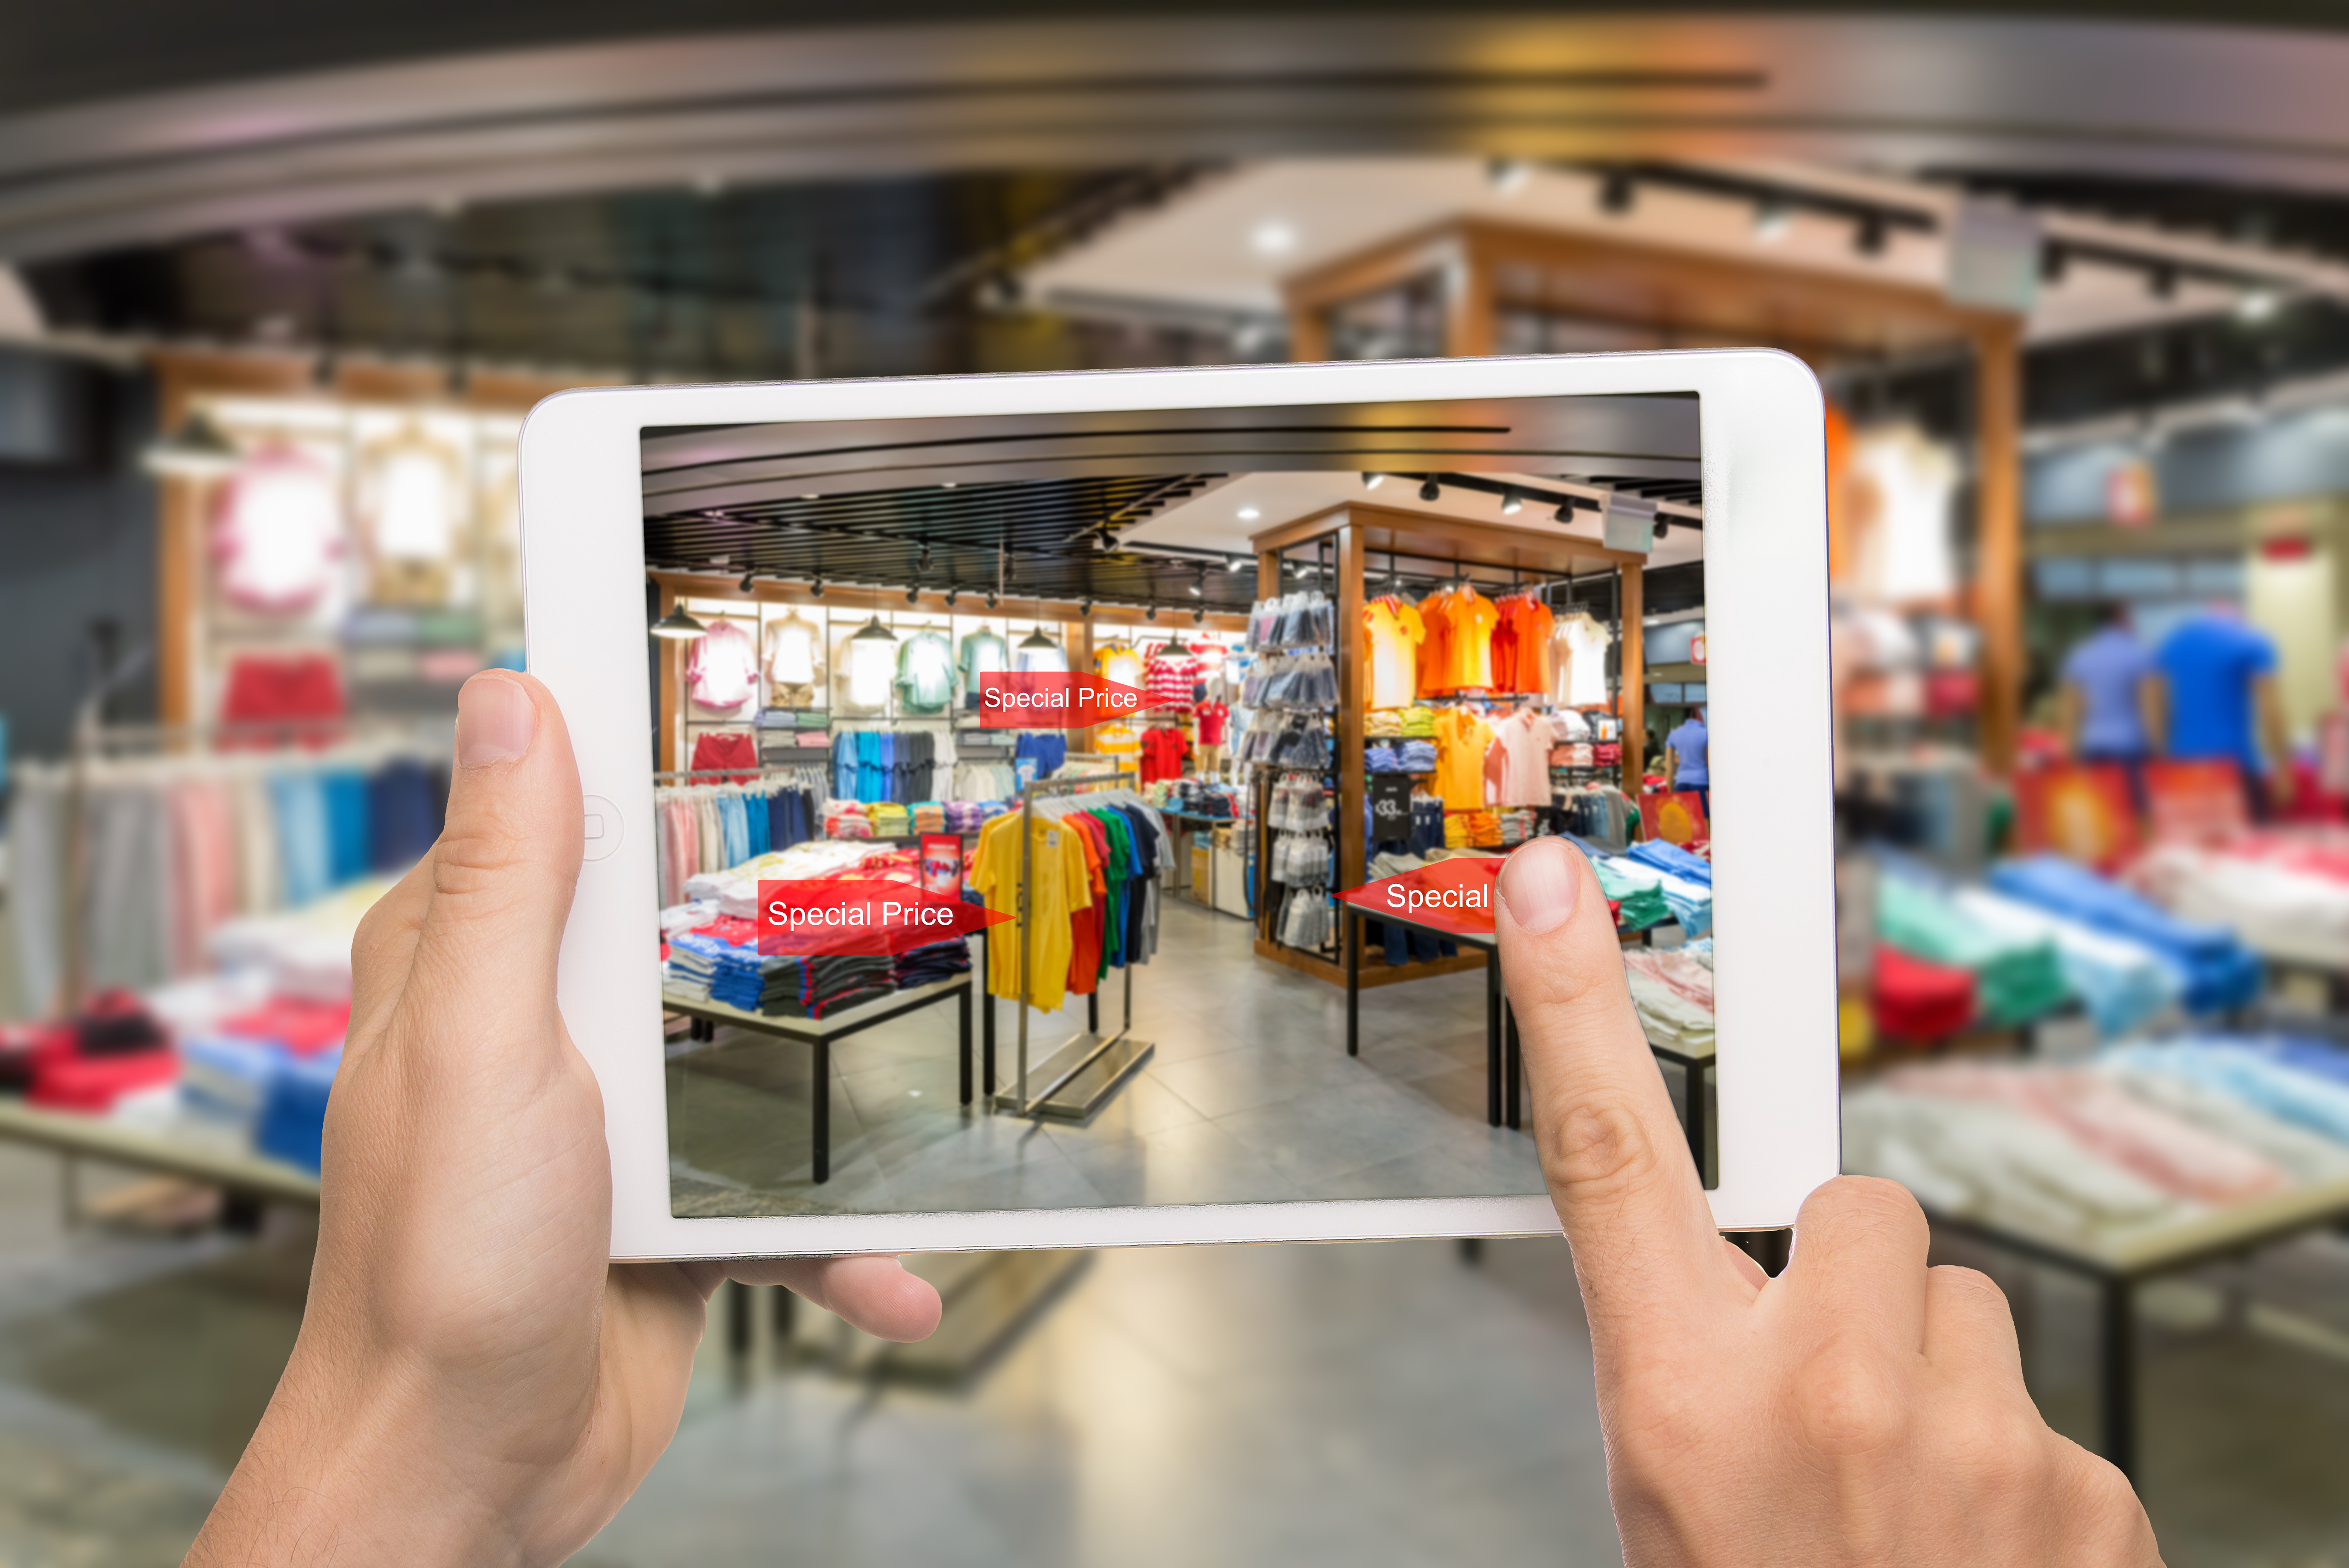 the current trends in retail technology and the future of retail experience at the end of the decade The future of the grocery sector in investment in the future nick bubb, retail retail think tank chose to discuss retail platforms and.